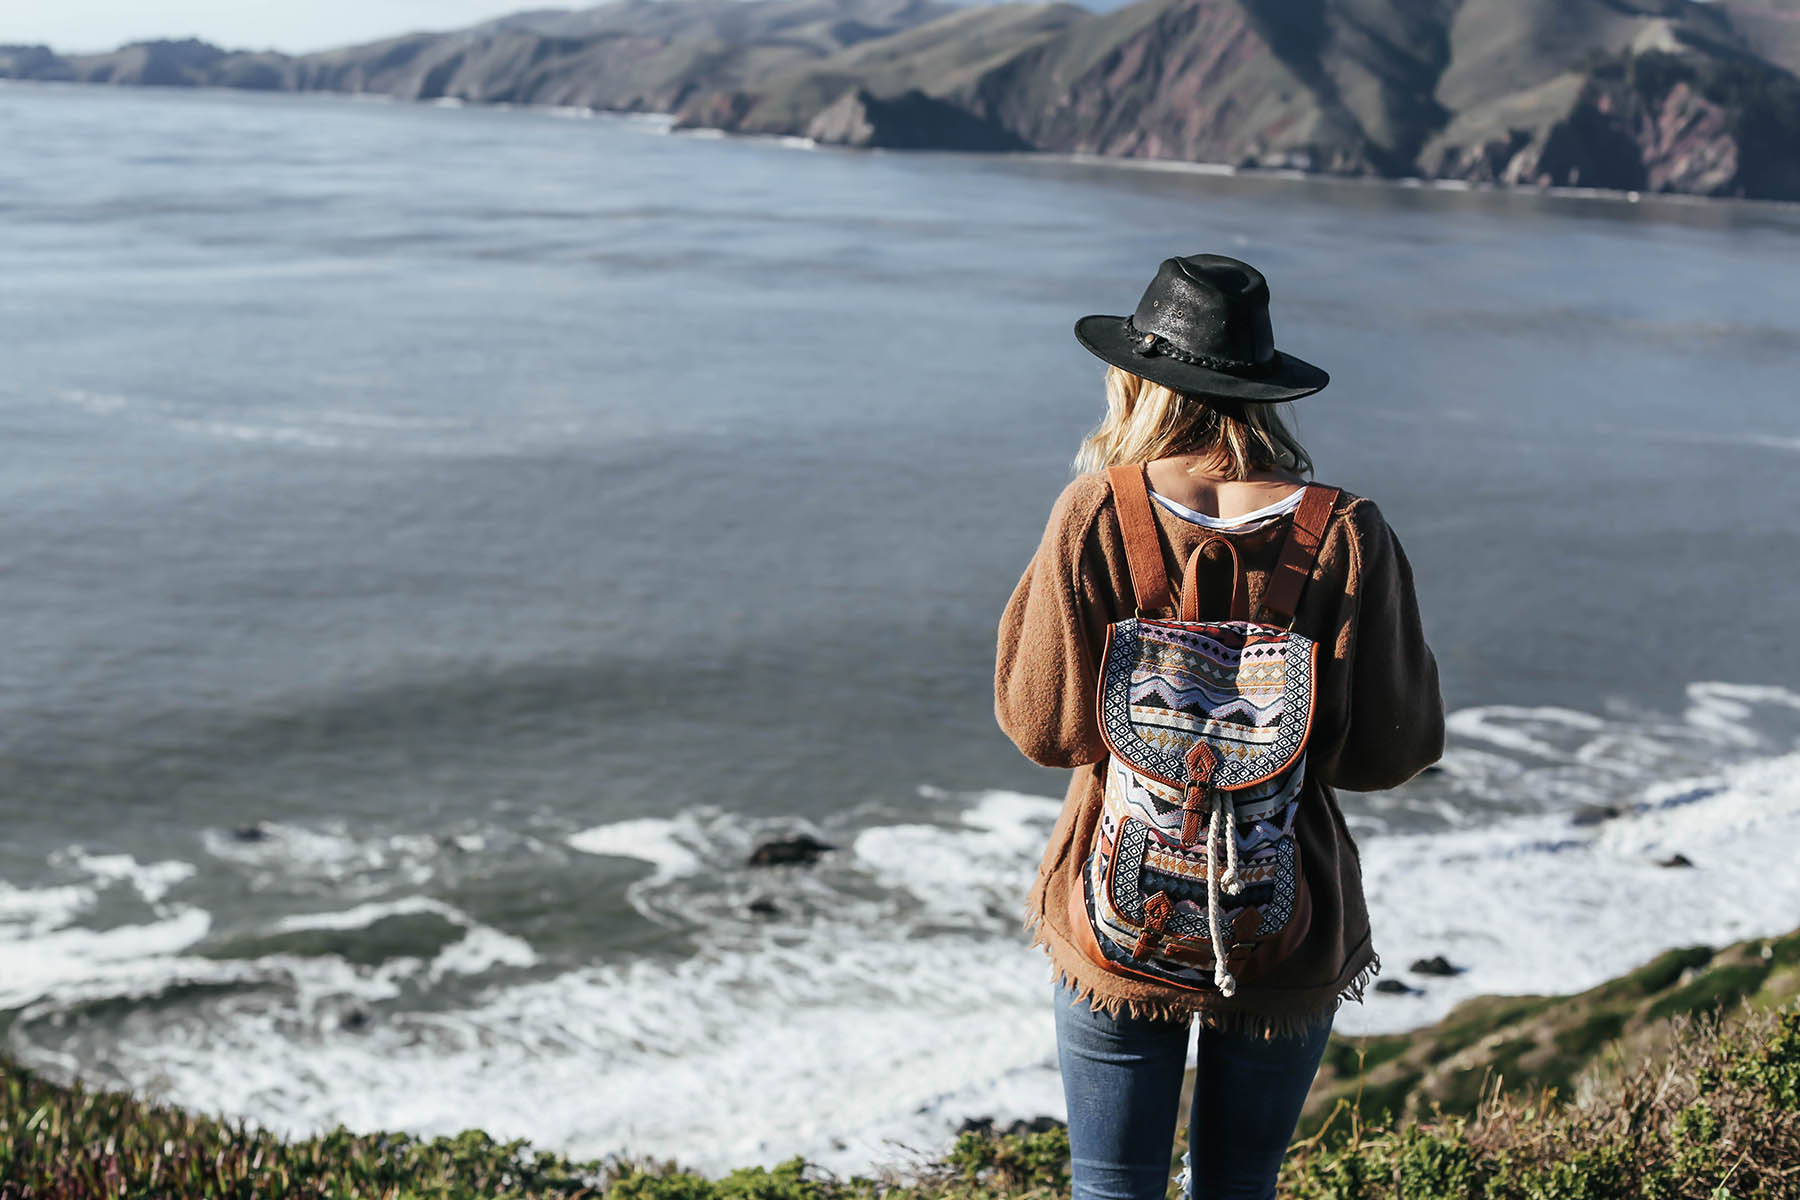 What to Pack for an Urban Hike